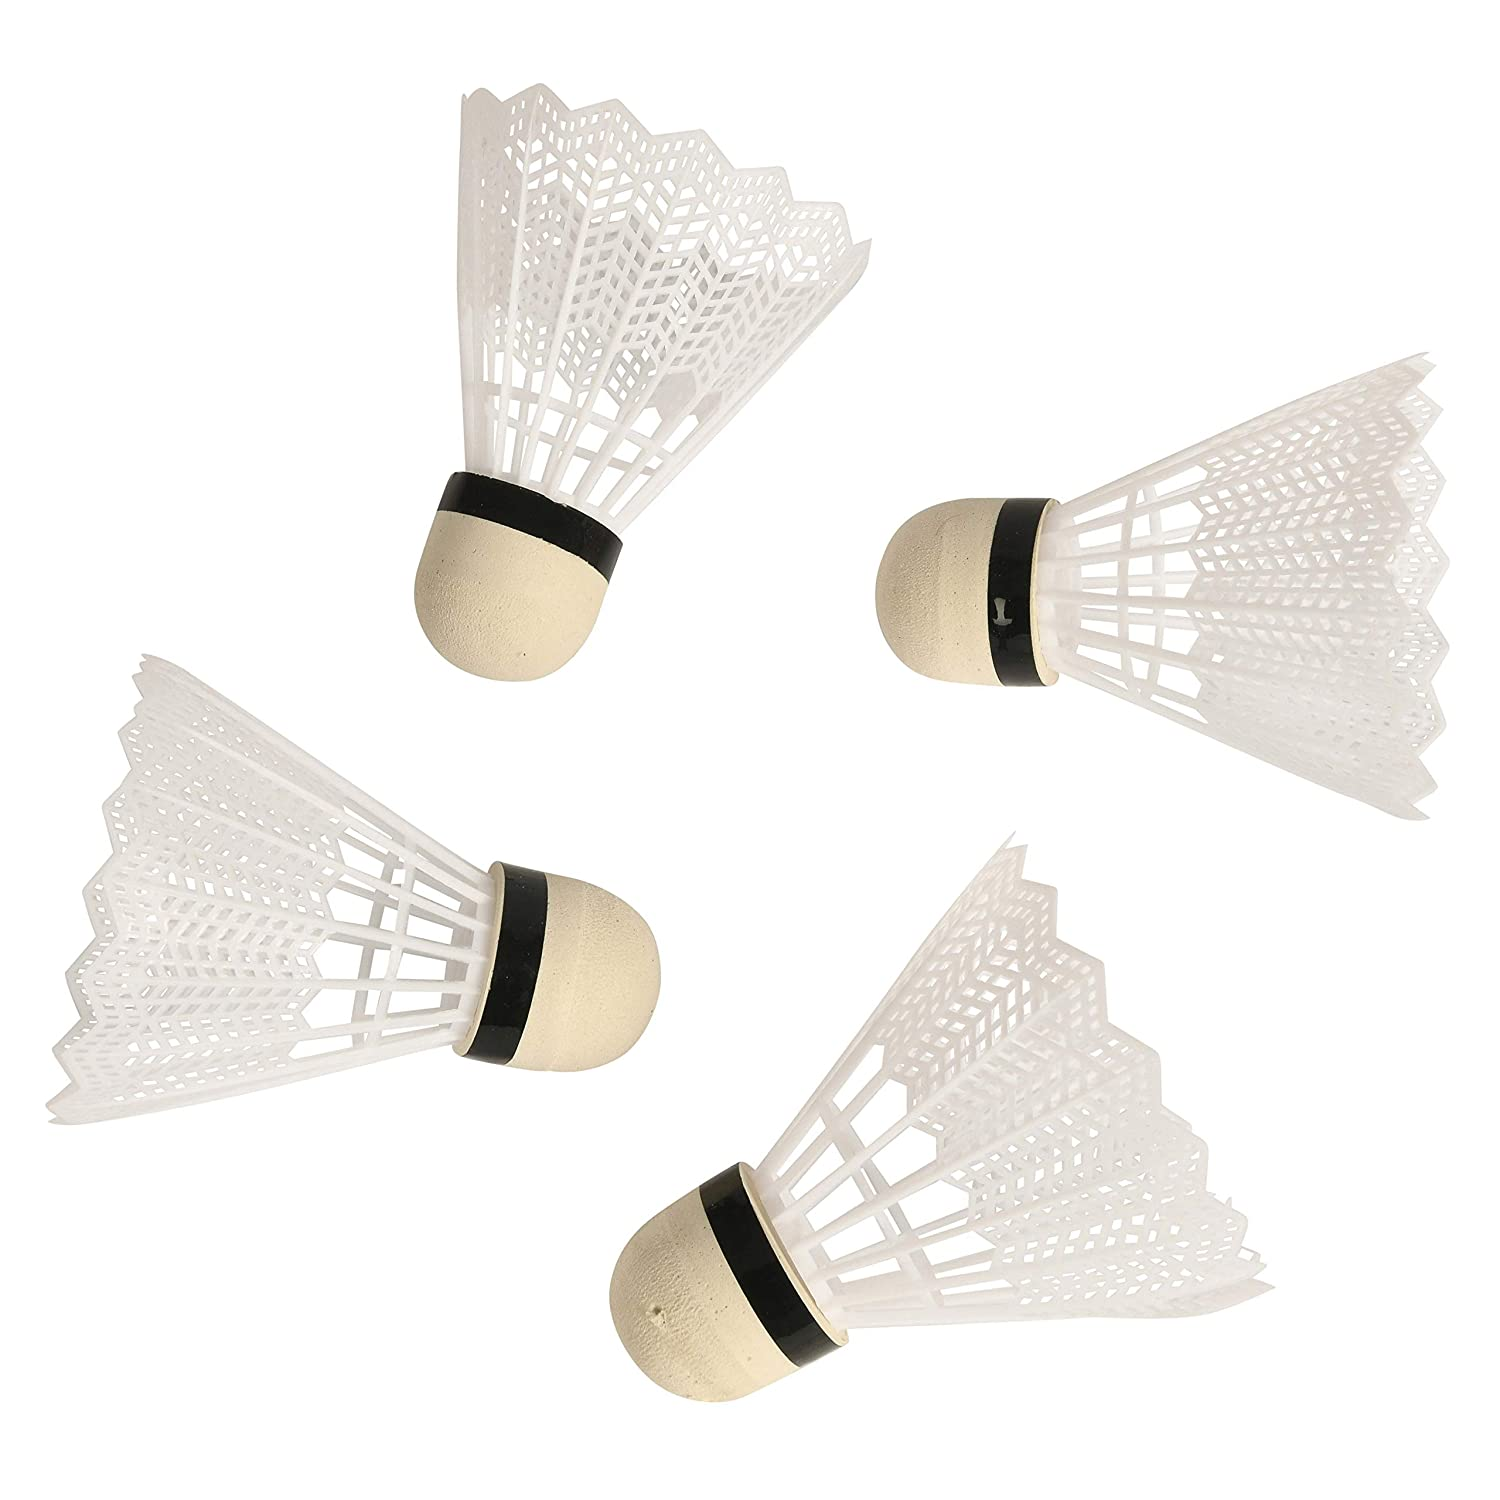 Wowow Toys /& Games Pack of 4 Badminton Shuttlecock Set For Kids Adults